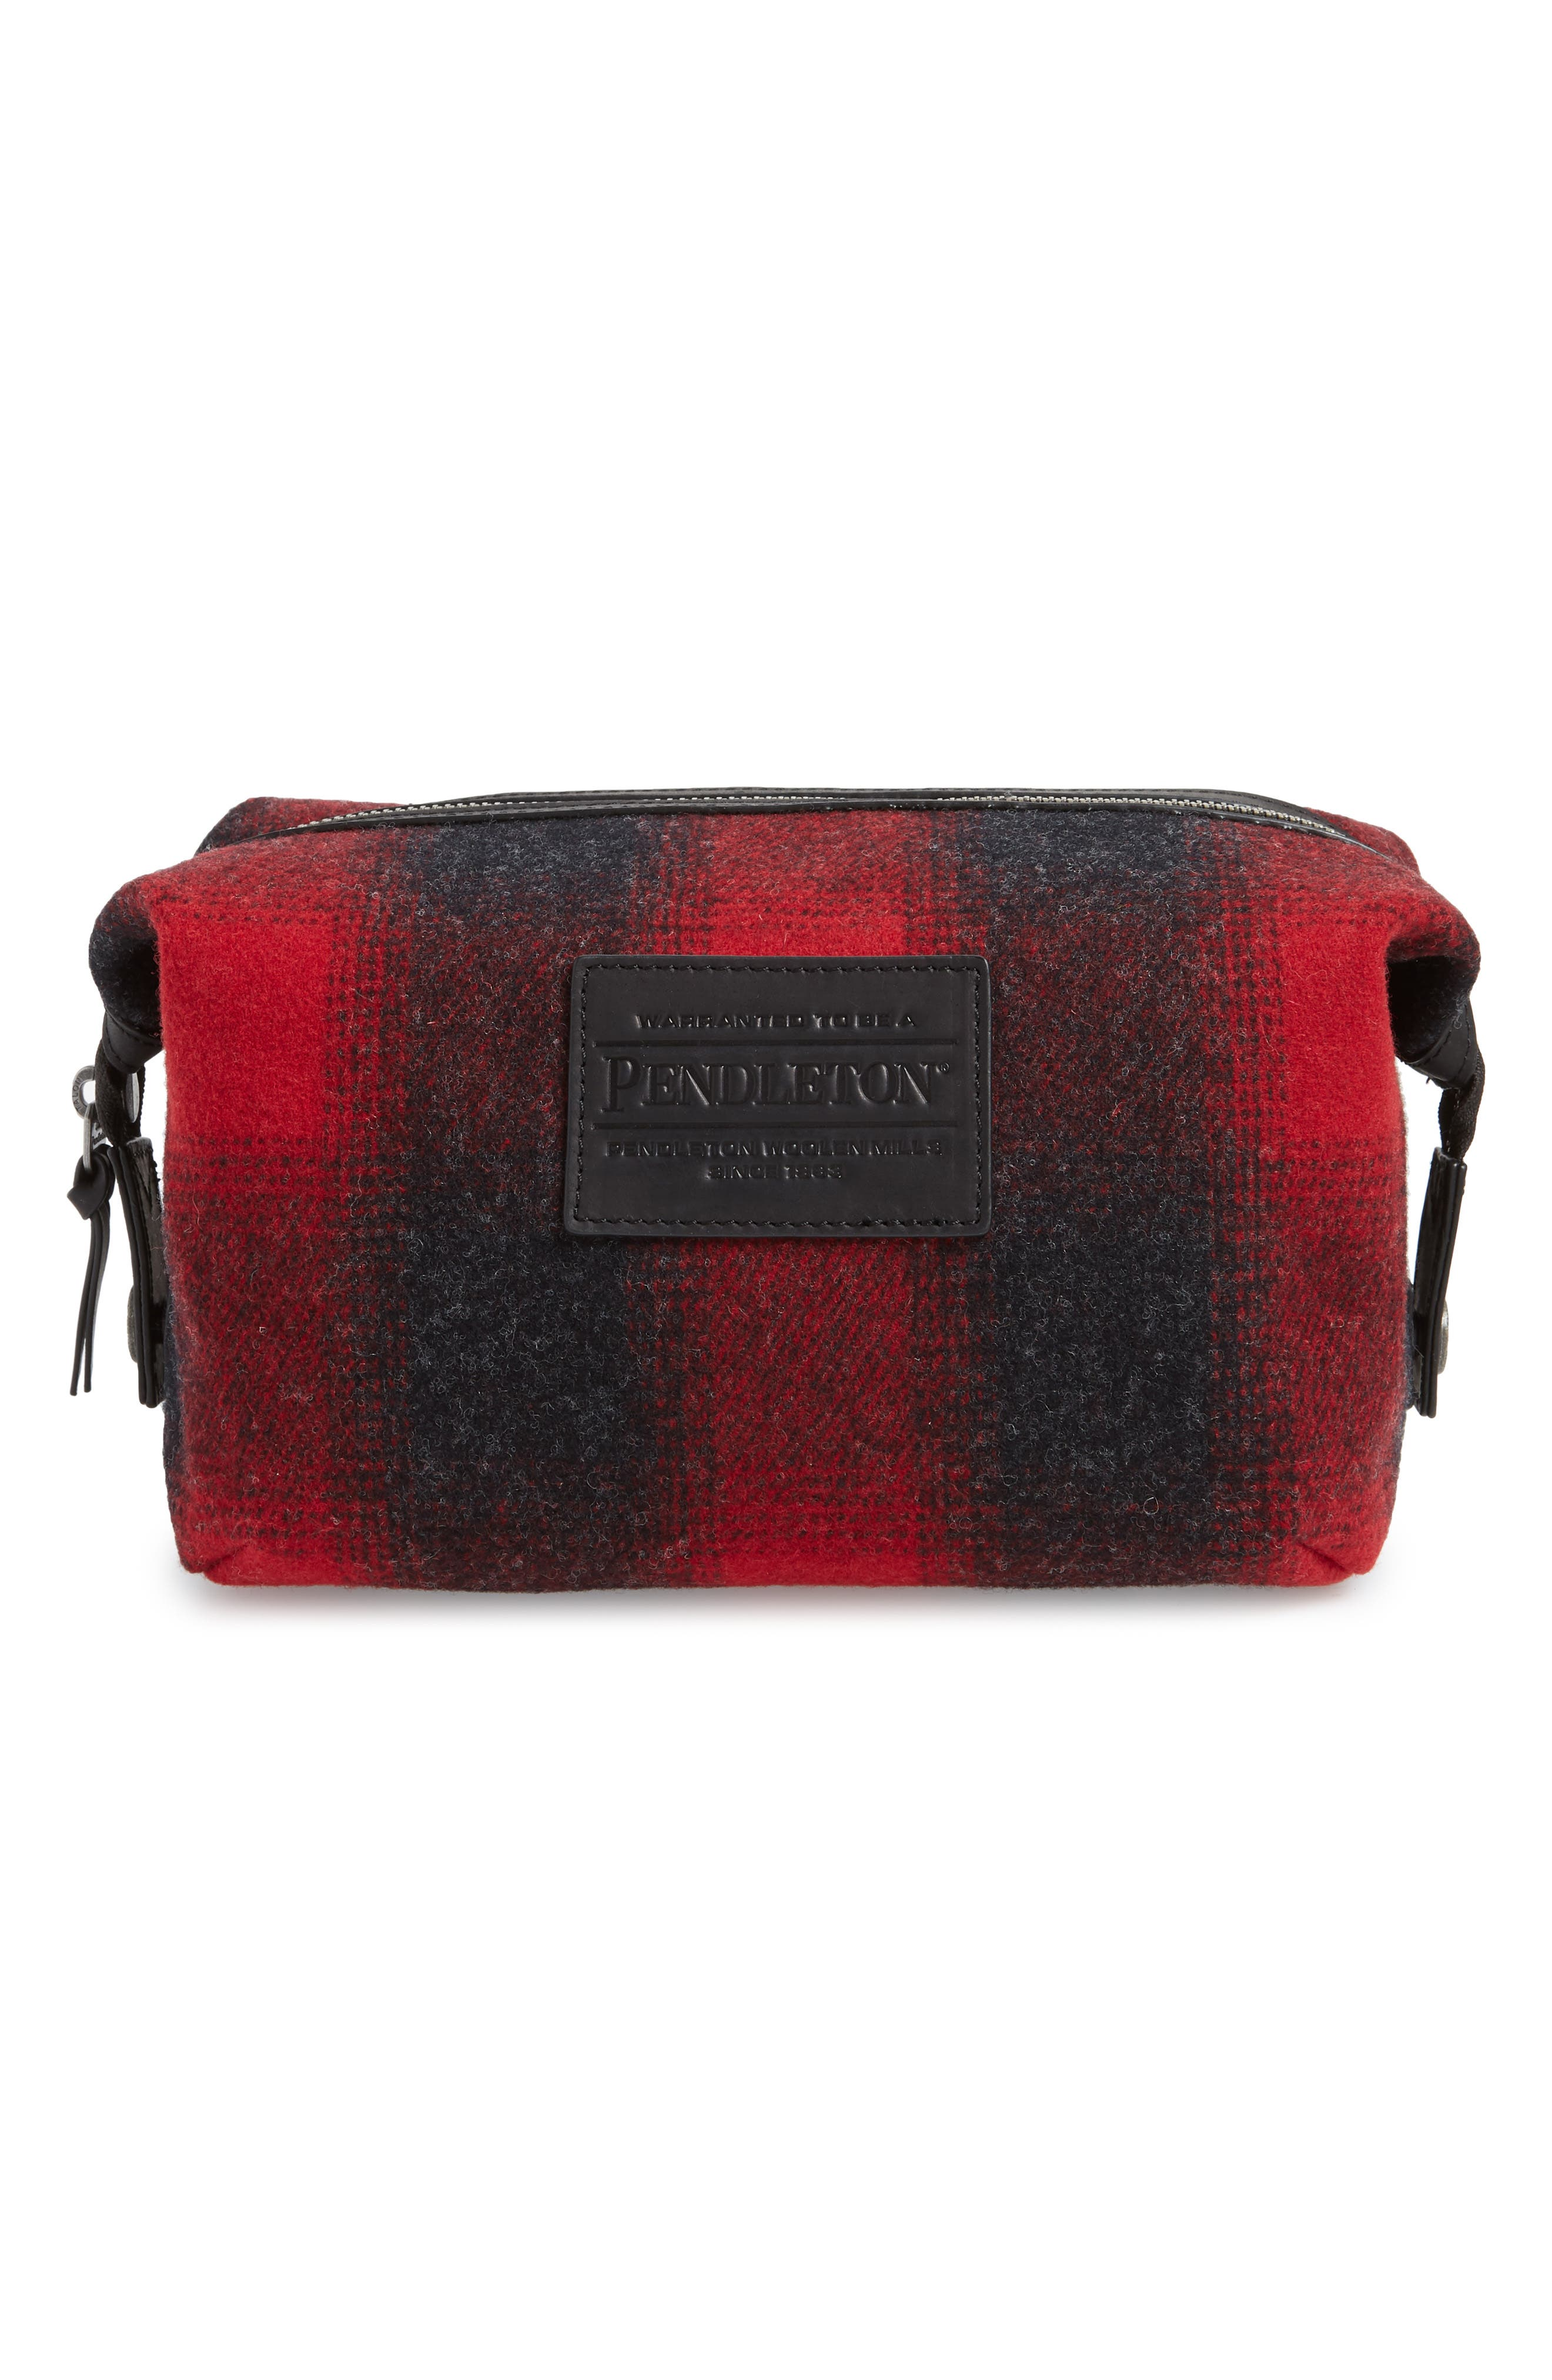 PENDLETON Essential Travel Pouch in Red Charcoal Mix